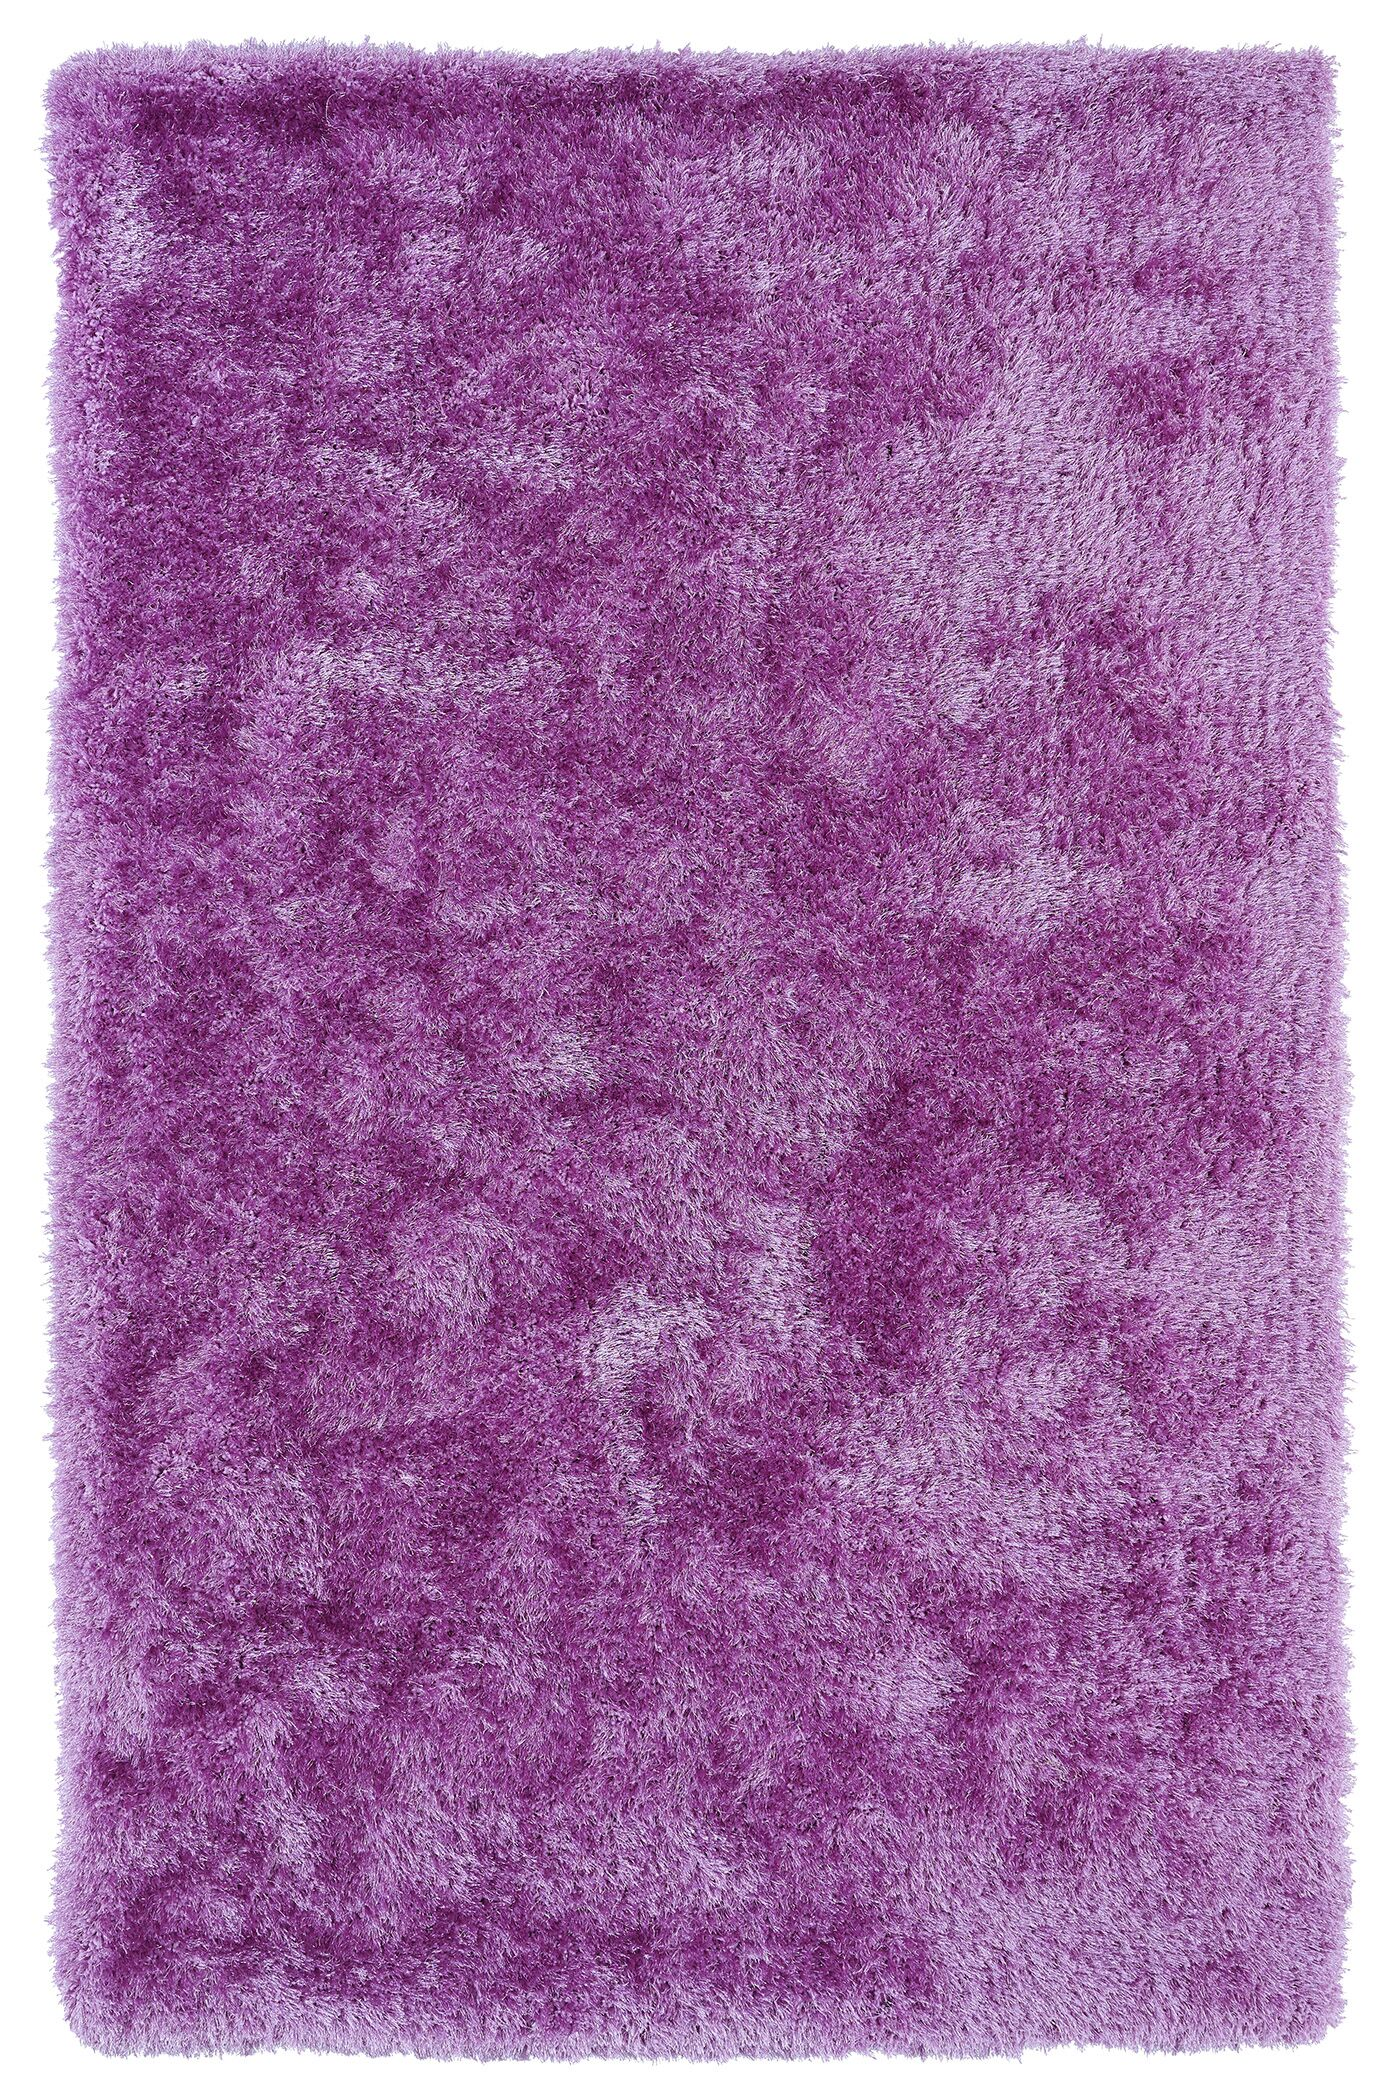 Caine Lilac Area Rug Rug Size: Rectangle 5' x 7'